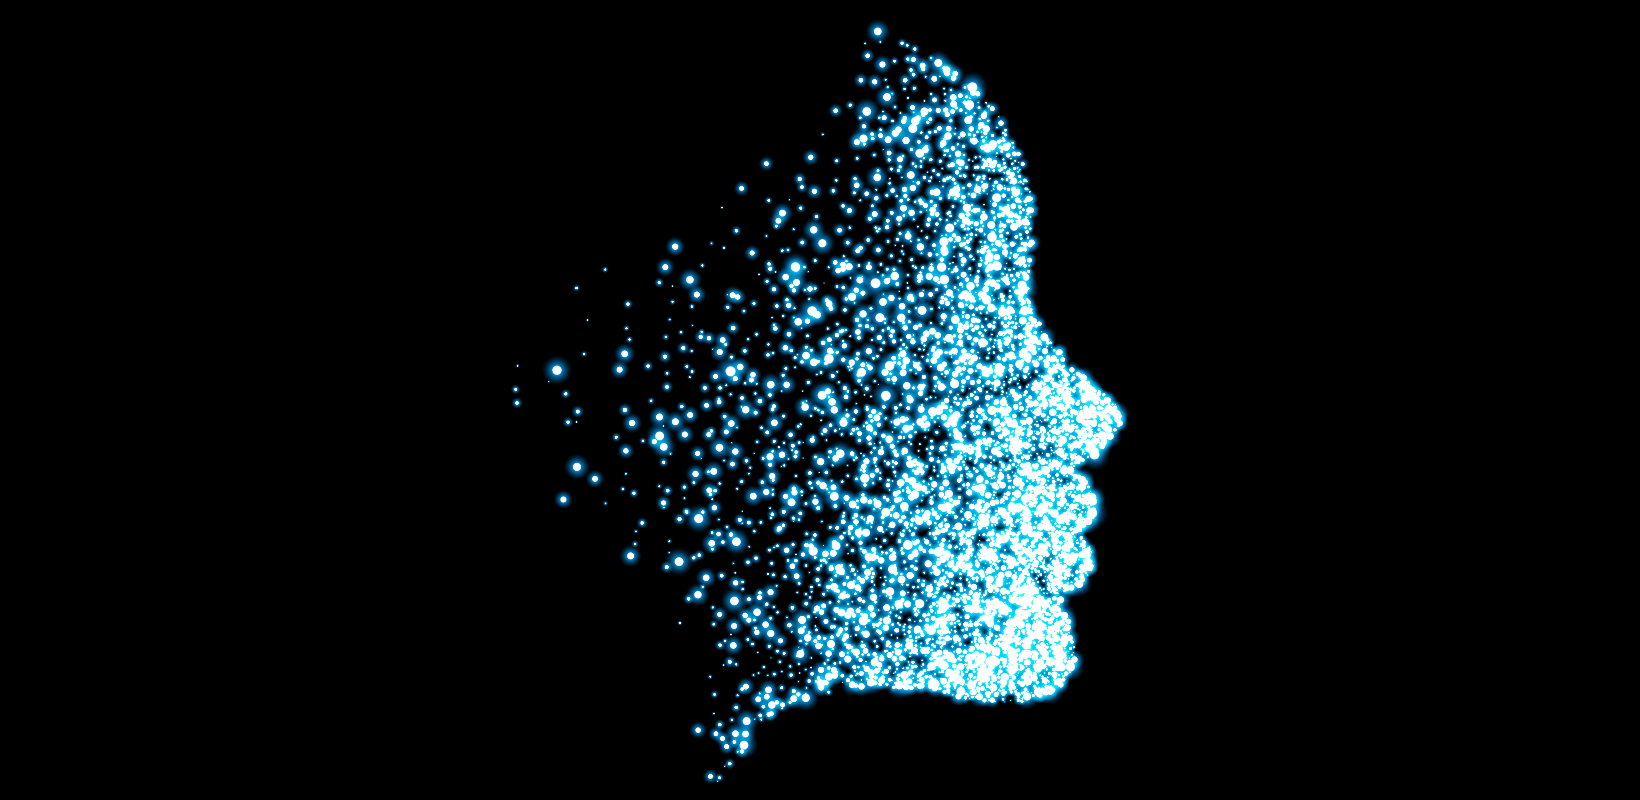 user experience design for nonprofit - image representing artificial intelligence - human head represented with points of light